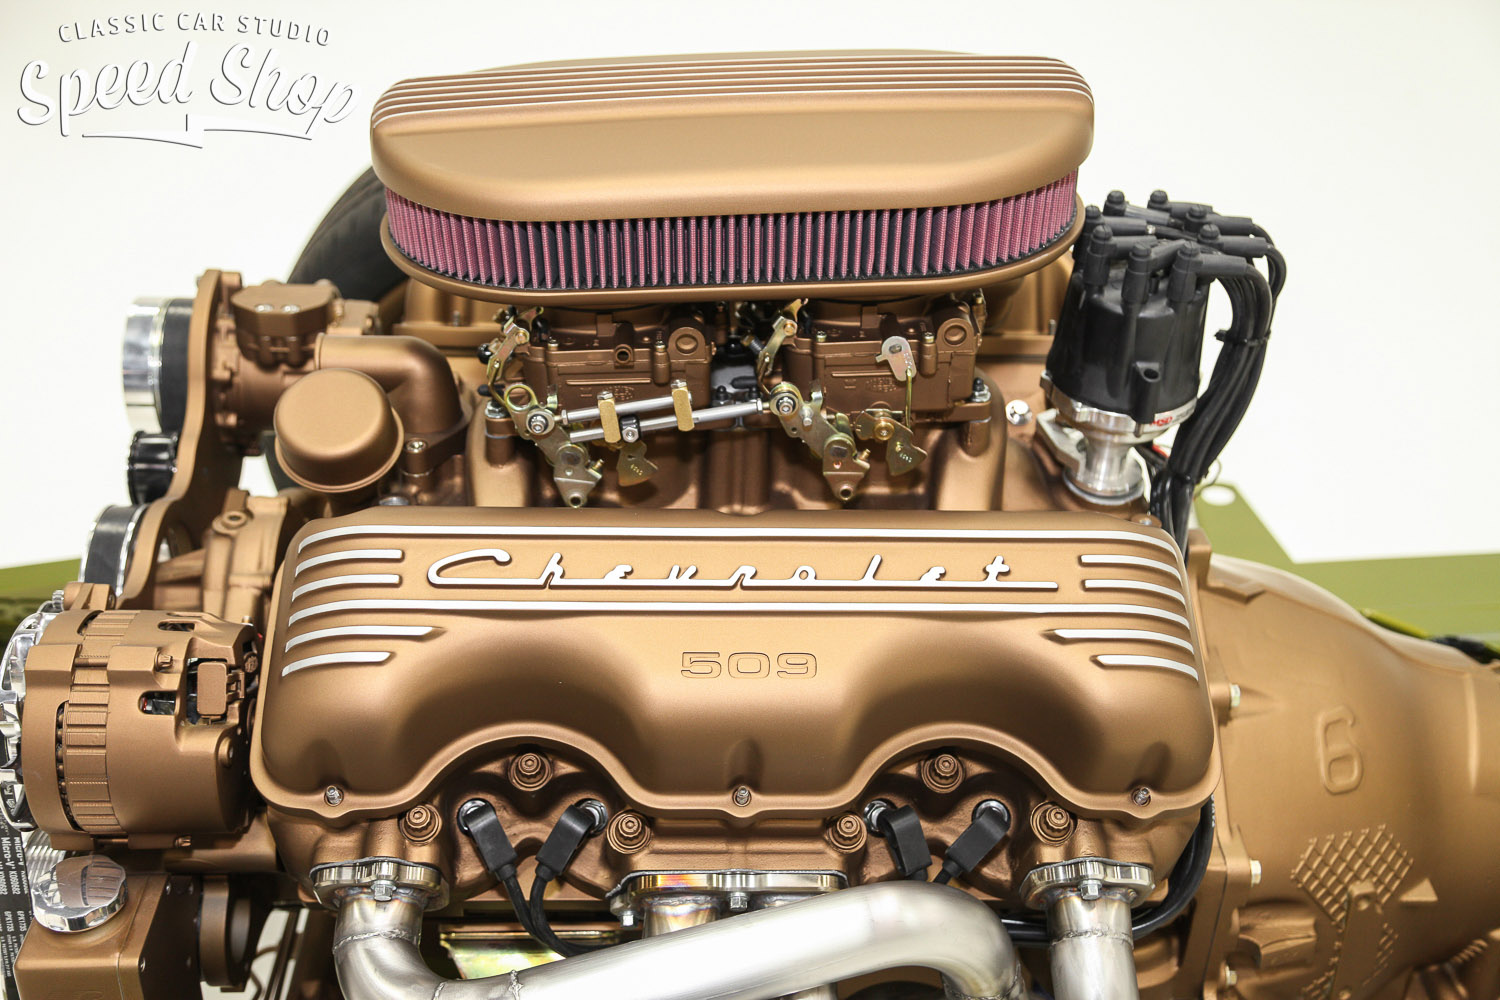 Chevrolet Corvette Turbo Jet additionally  likewise Nomad With A Chevy Big Block V likewise  besides . on chevy v8 engine